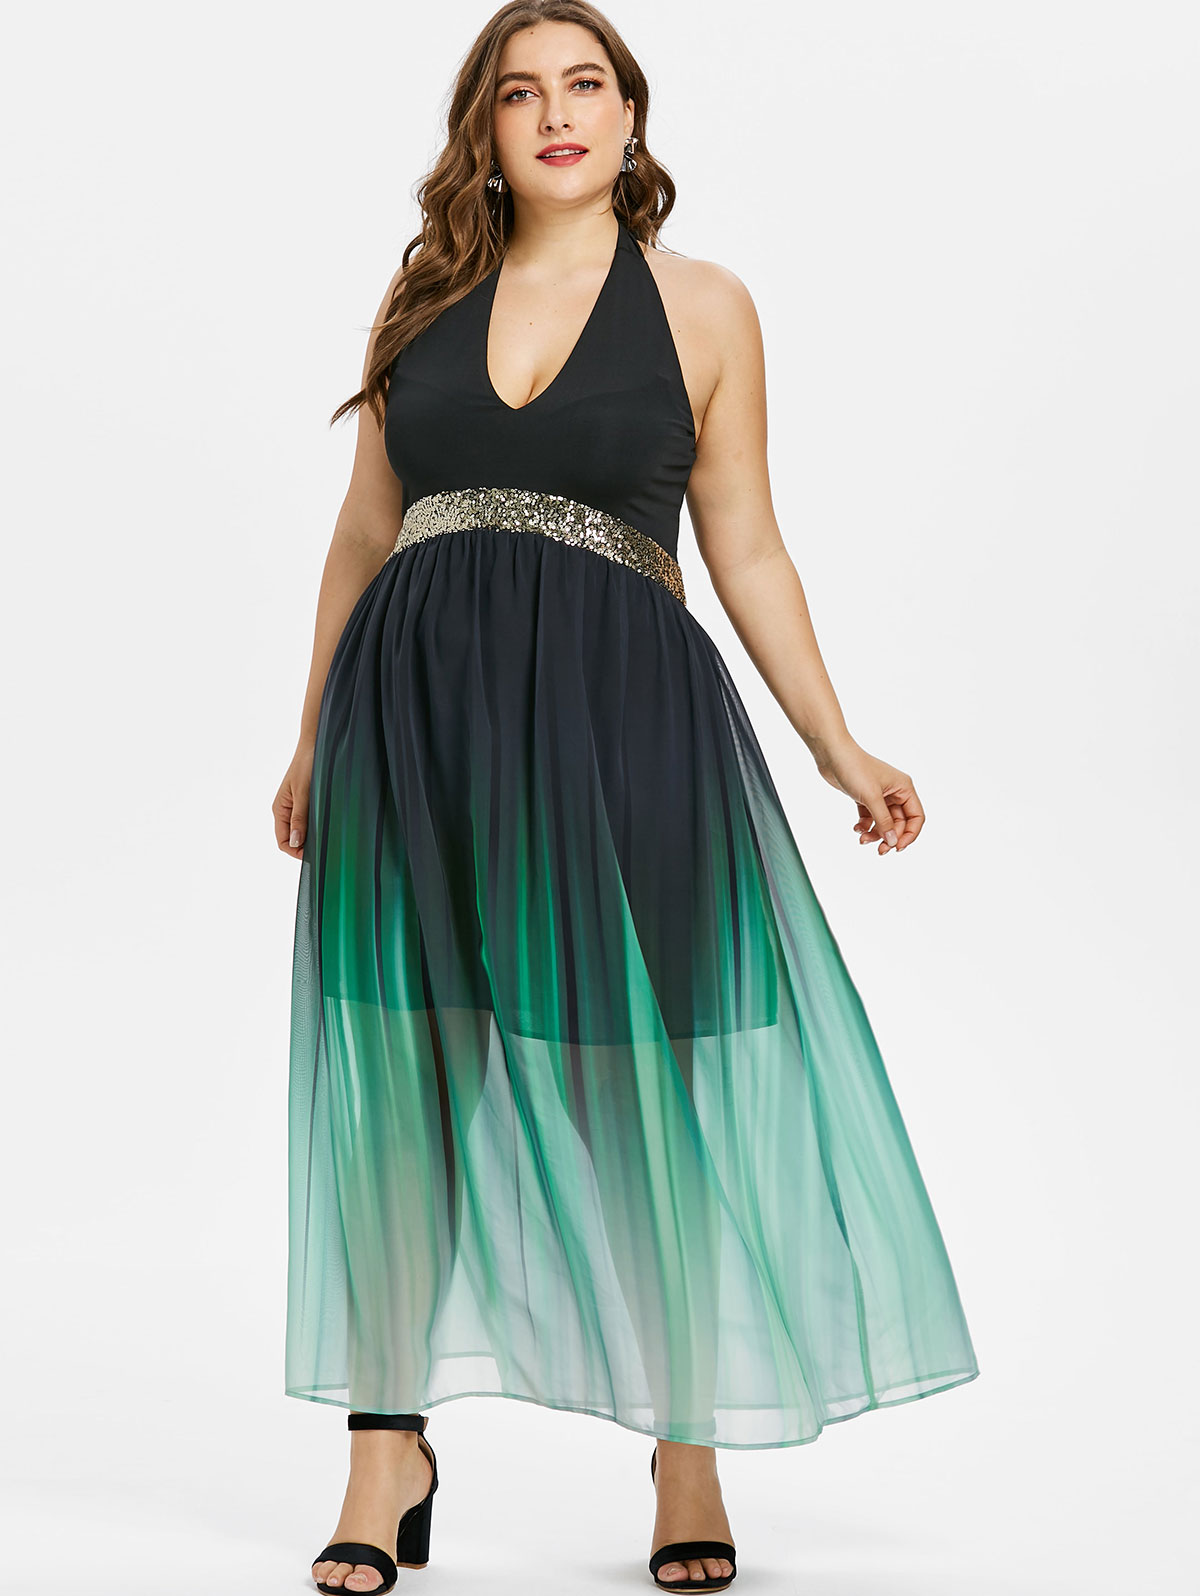 US $20.49 52% OFF|Wipalo Plus Size Halter Neck Women Open Back Sequined  Trim Ombre Maxi Dress Sleeveless A Line Dress Party Sundresses Vestidos-in  ...